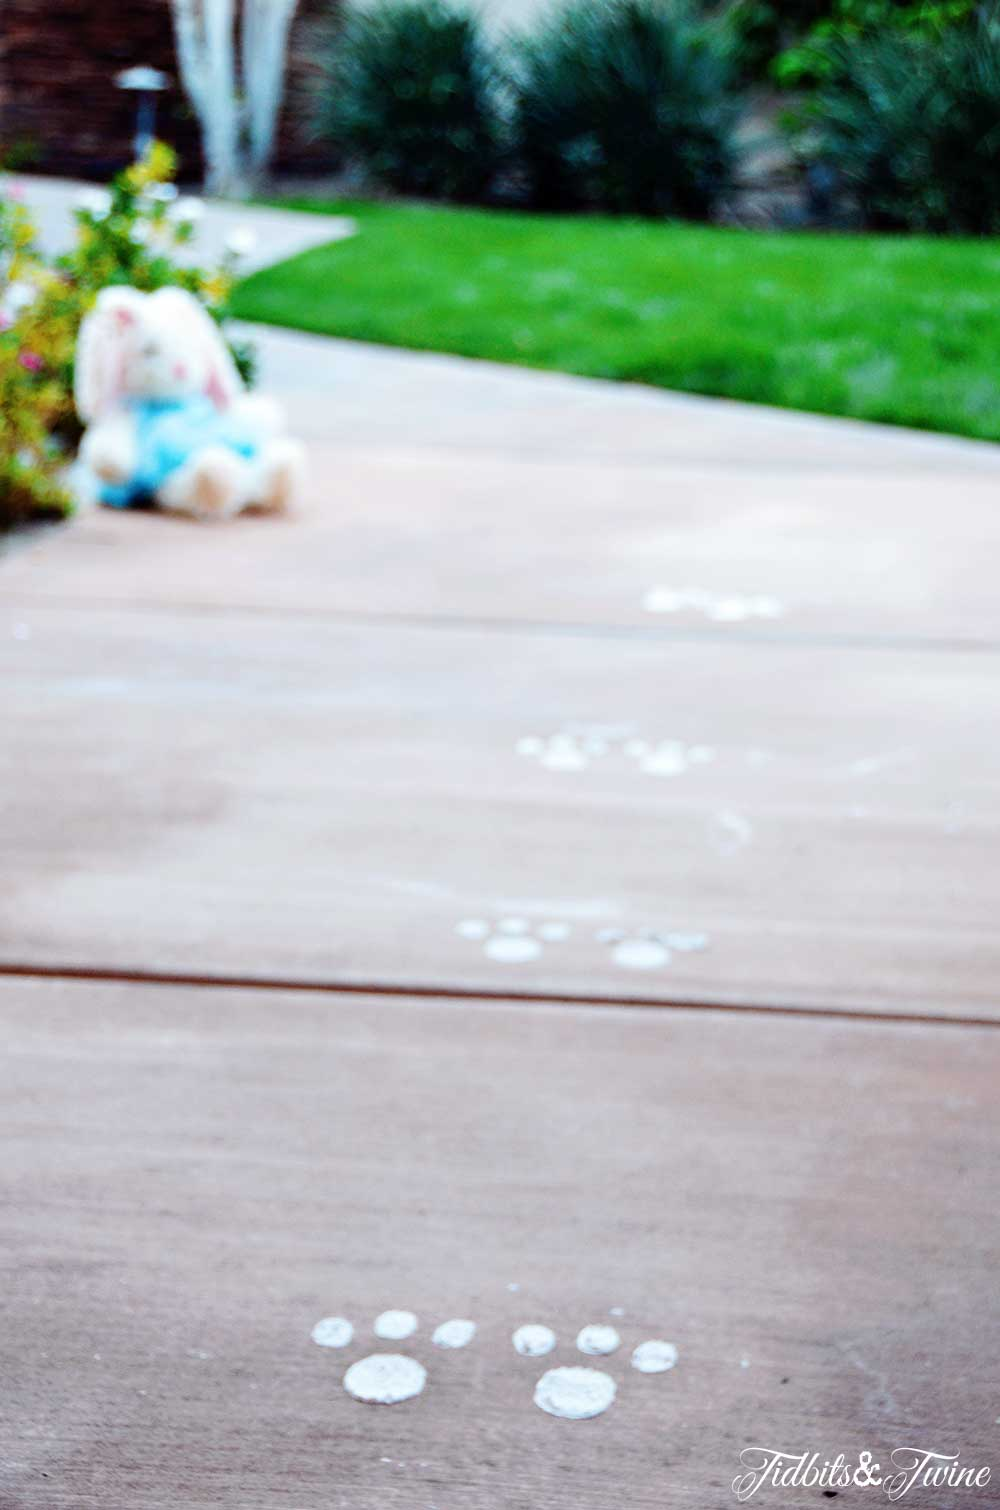 TIDBITS&TWINE - Easter Bunny Footprints